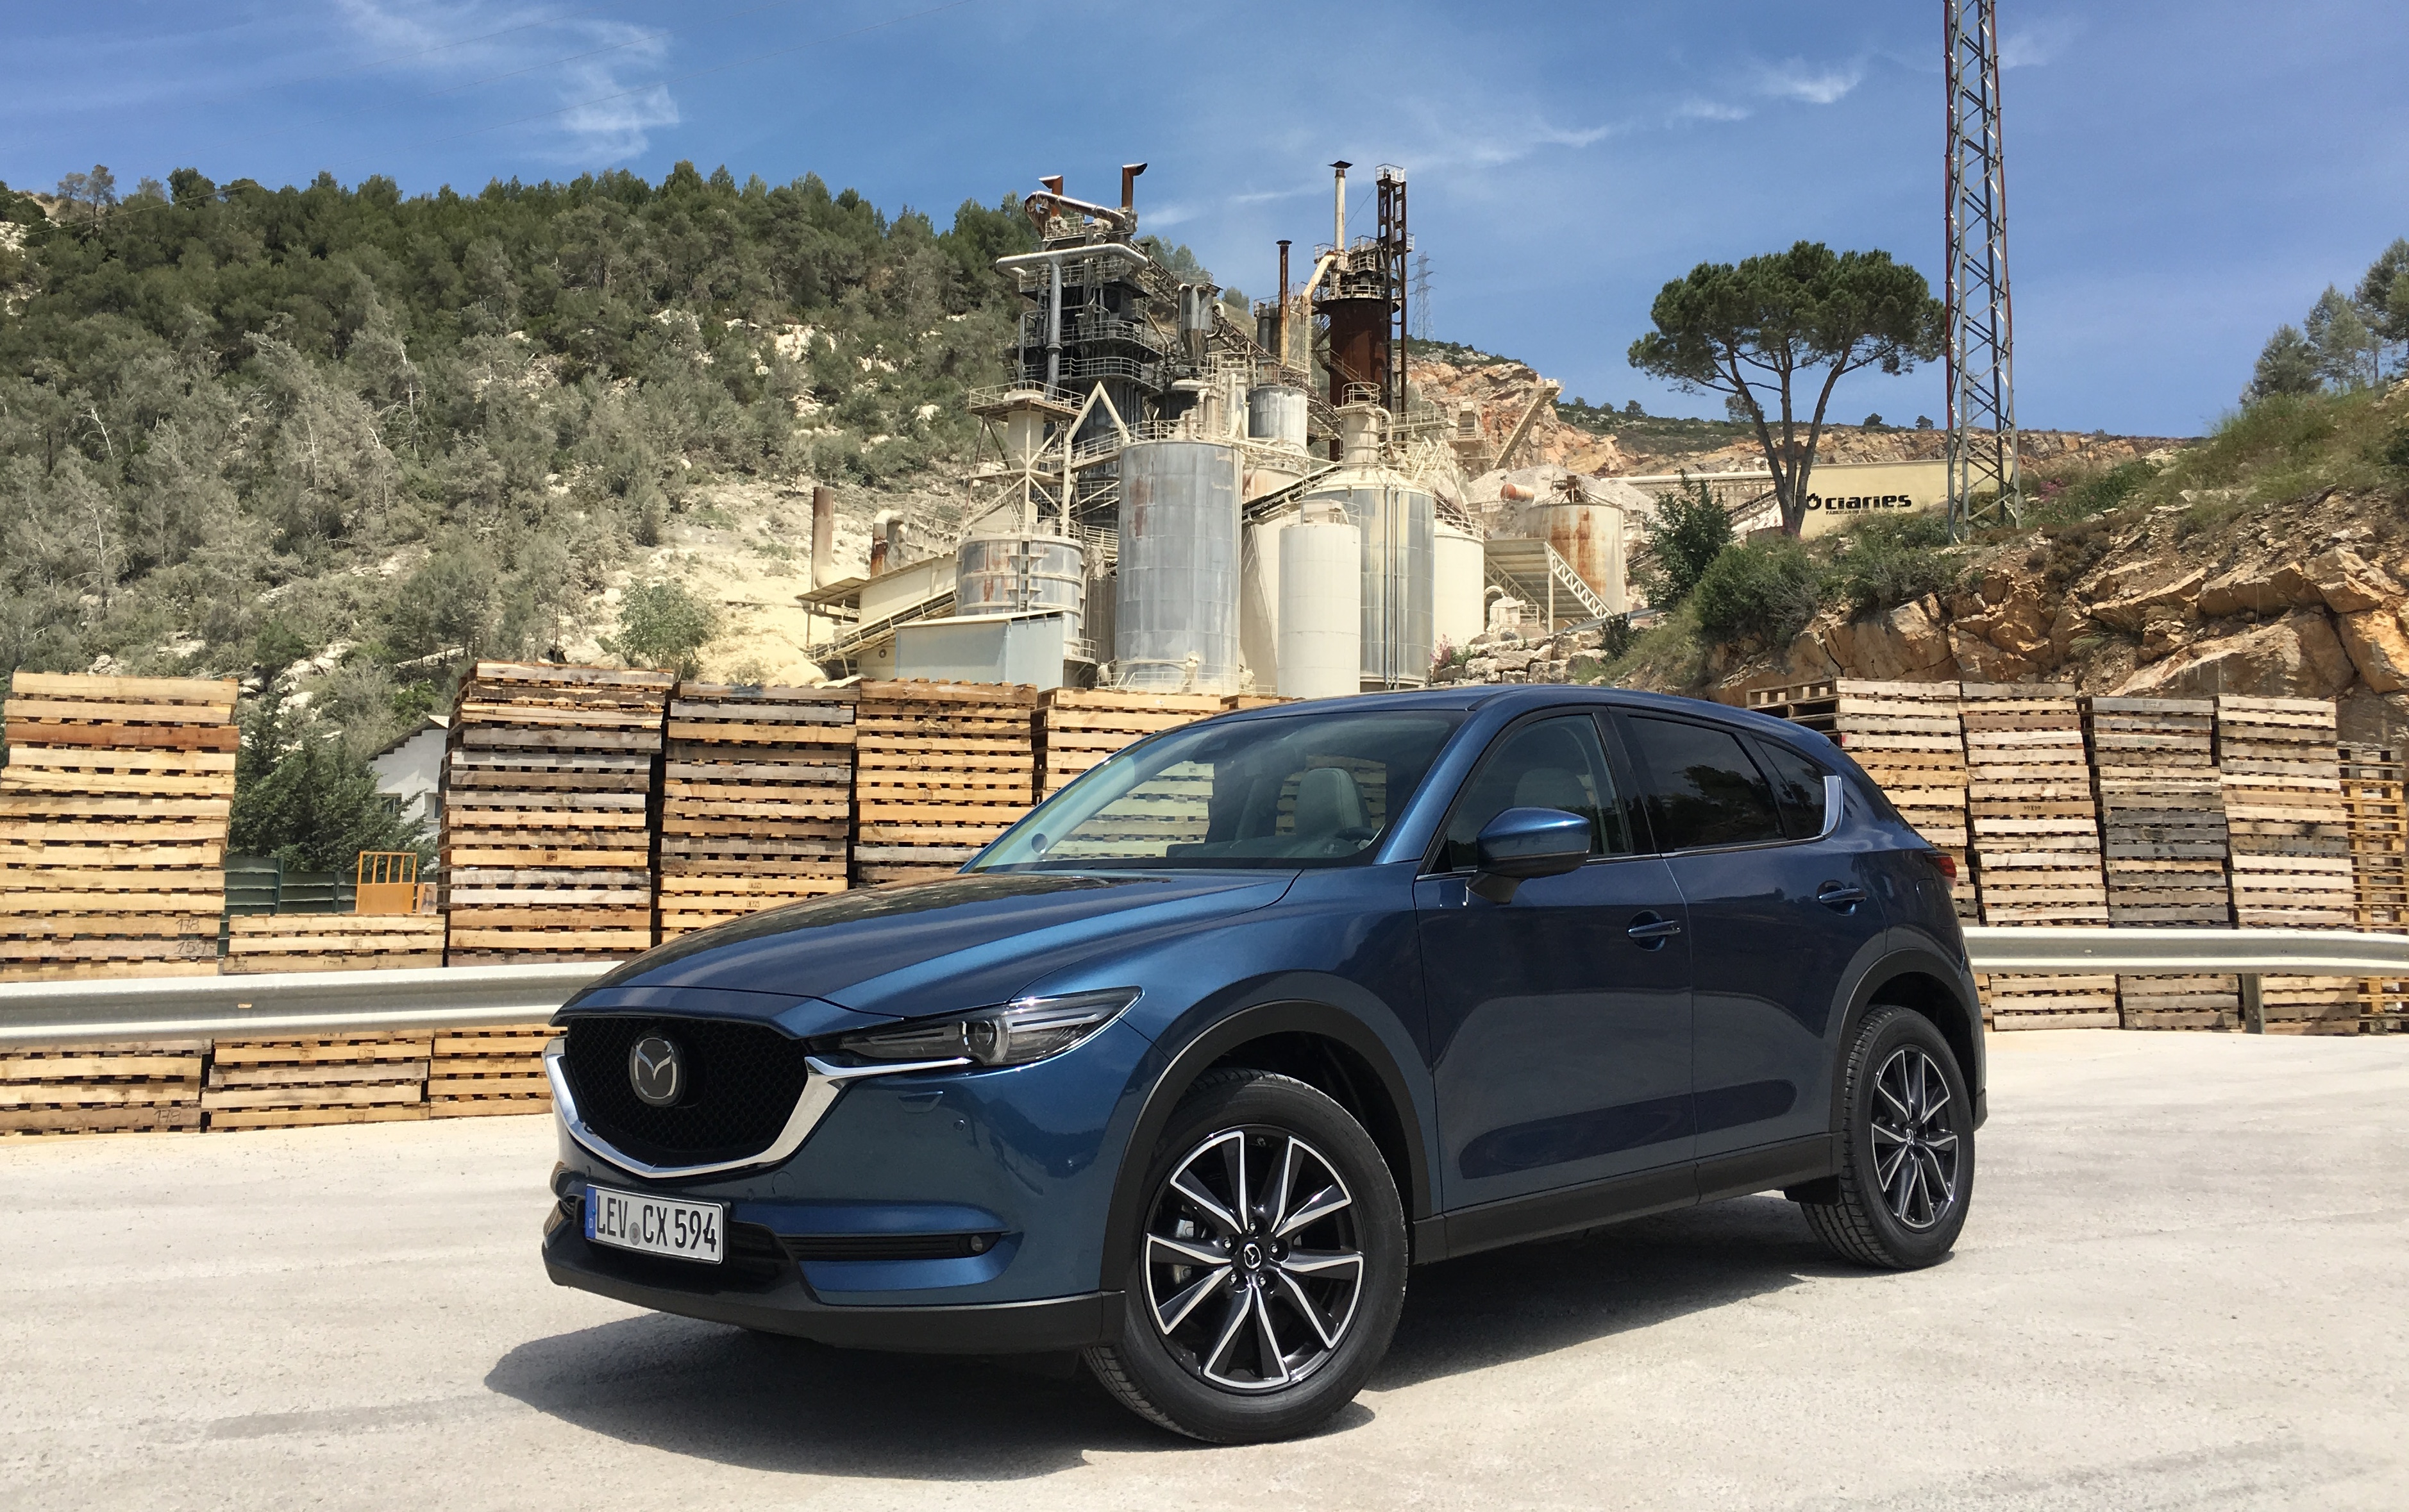 rover in com singapore cx discovery perfect reviews review land with grand beautiful touring tinadh mazda model sport my innovation